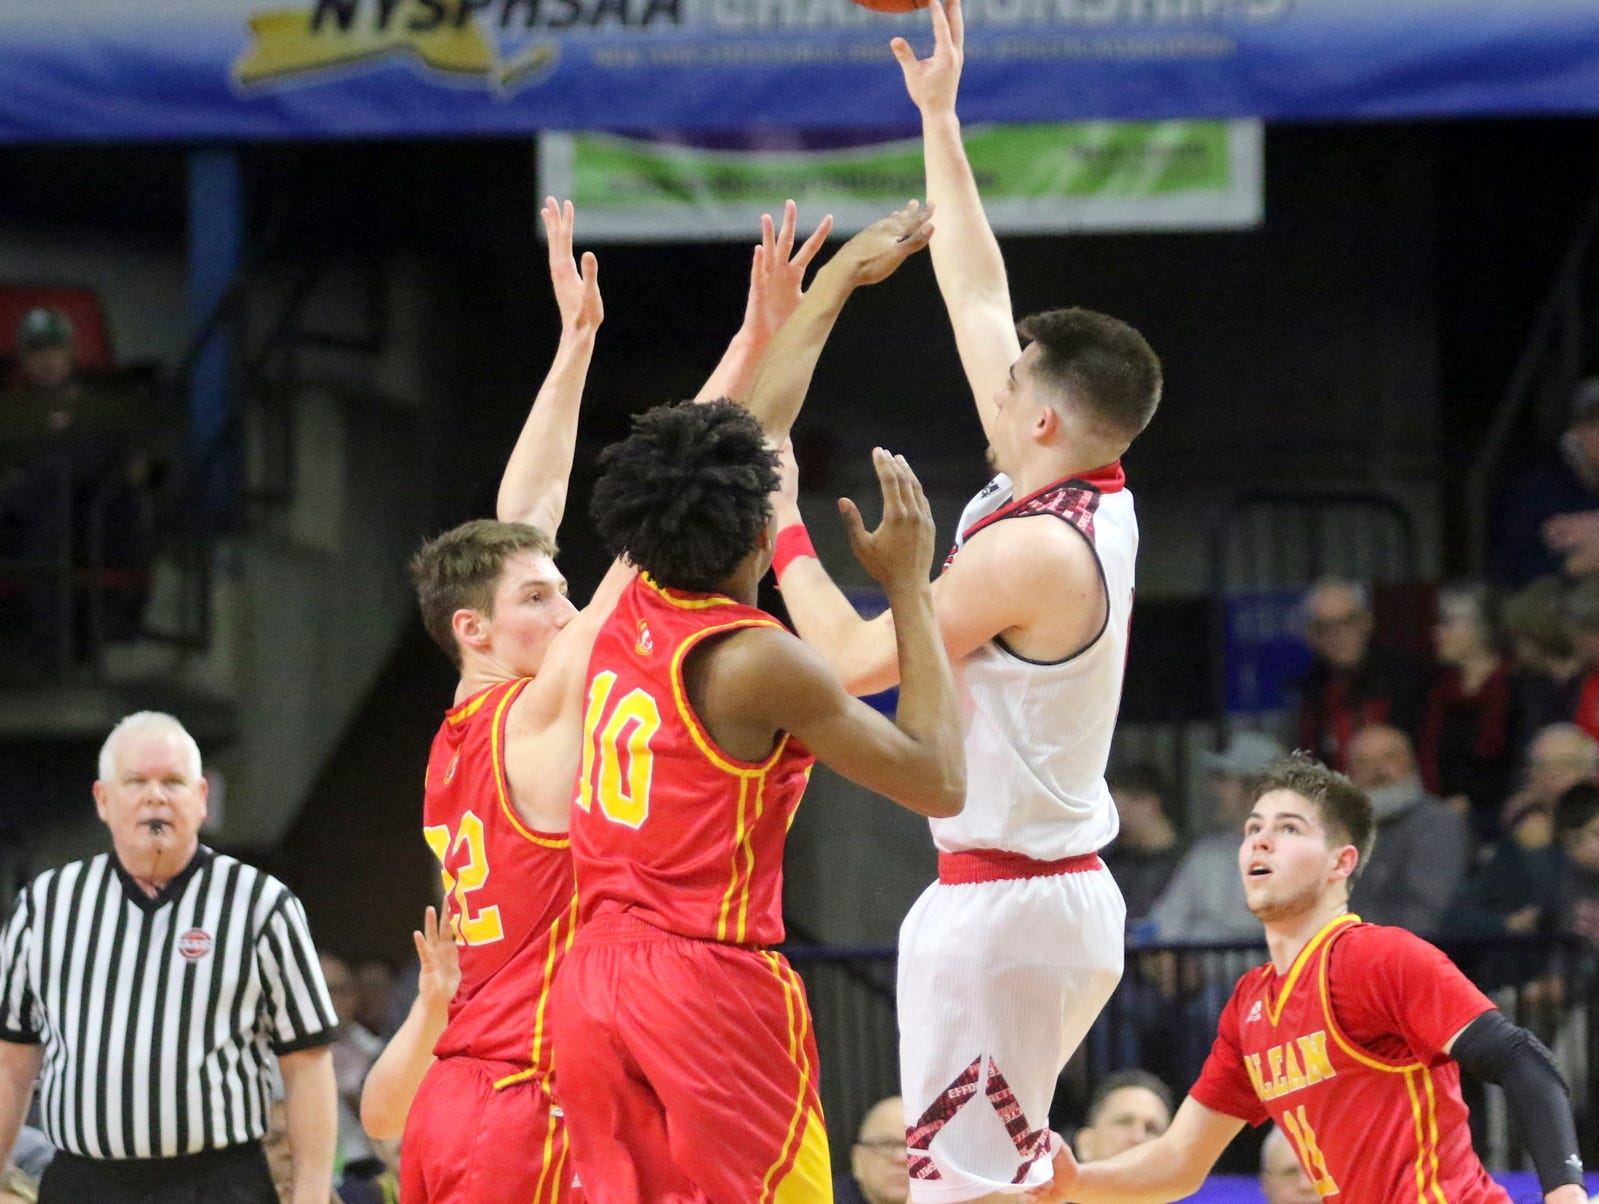 Joseph Girard III of Glens Falls puts up a shot during an 83-63 win over Olean in a Class B boys basketball state semifinal March 15, 2019 at Floyd L. Maines Veterans Memorial Arena in Binghamton.